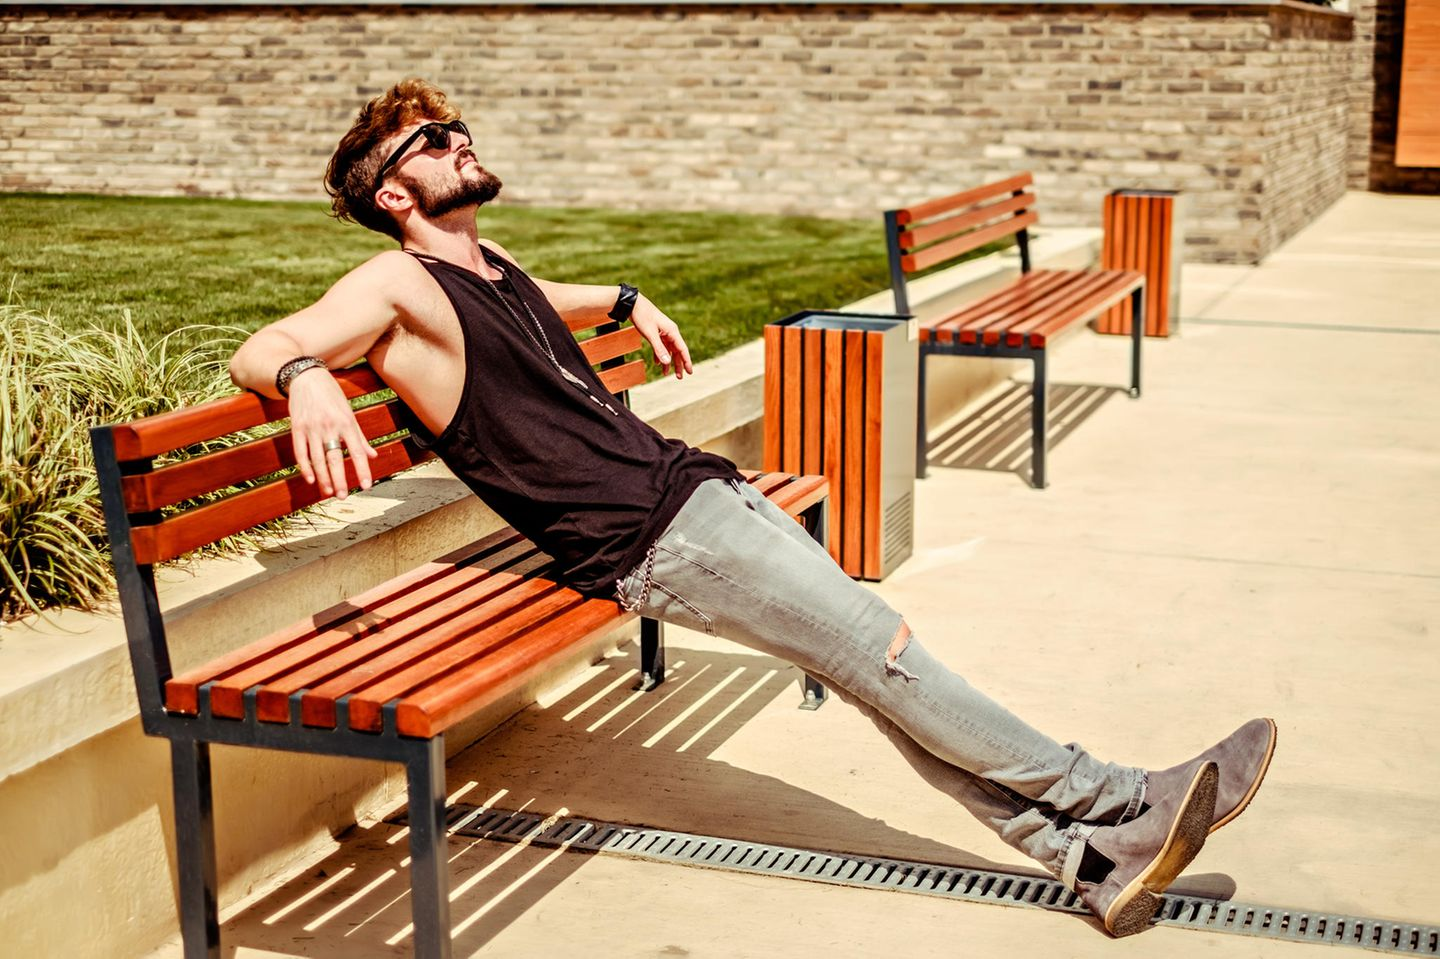 Womanizer reveals four secrets about rioters: An attractive man sits on a bench